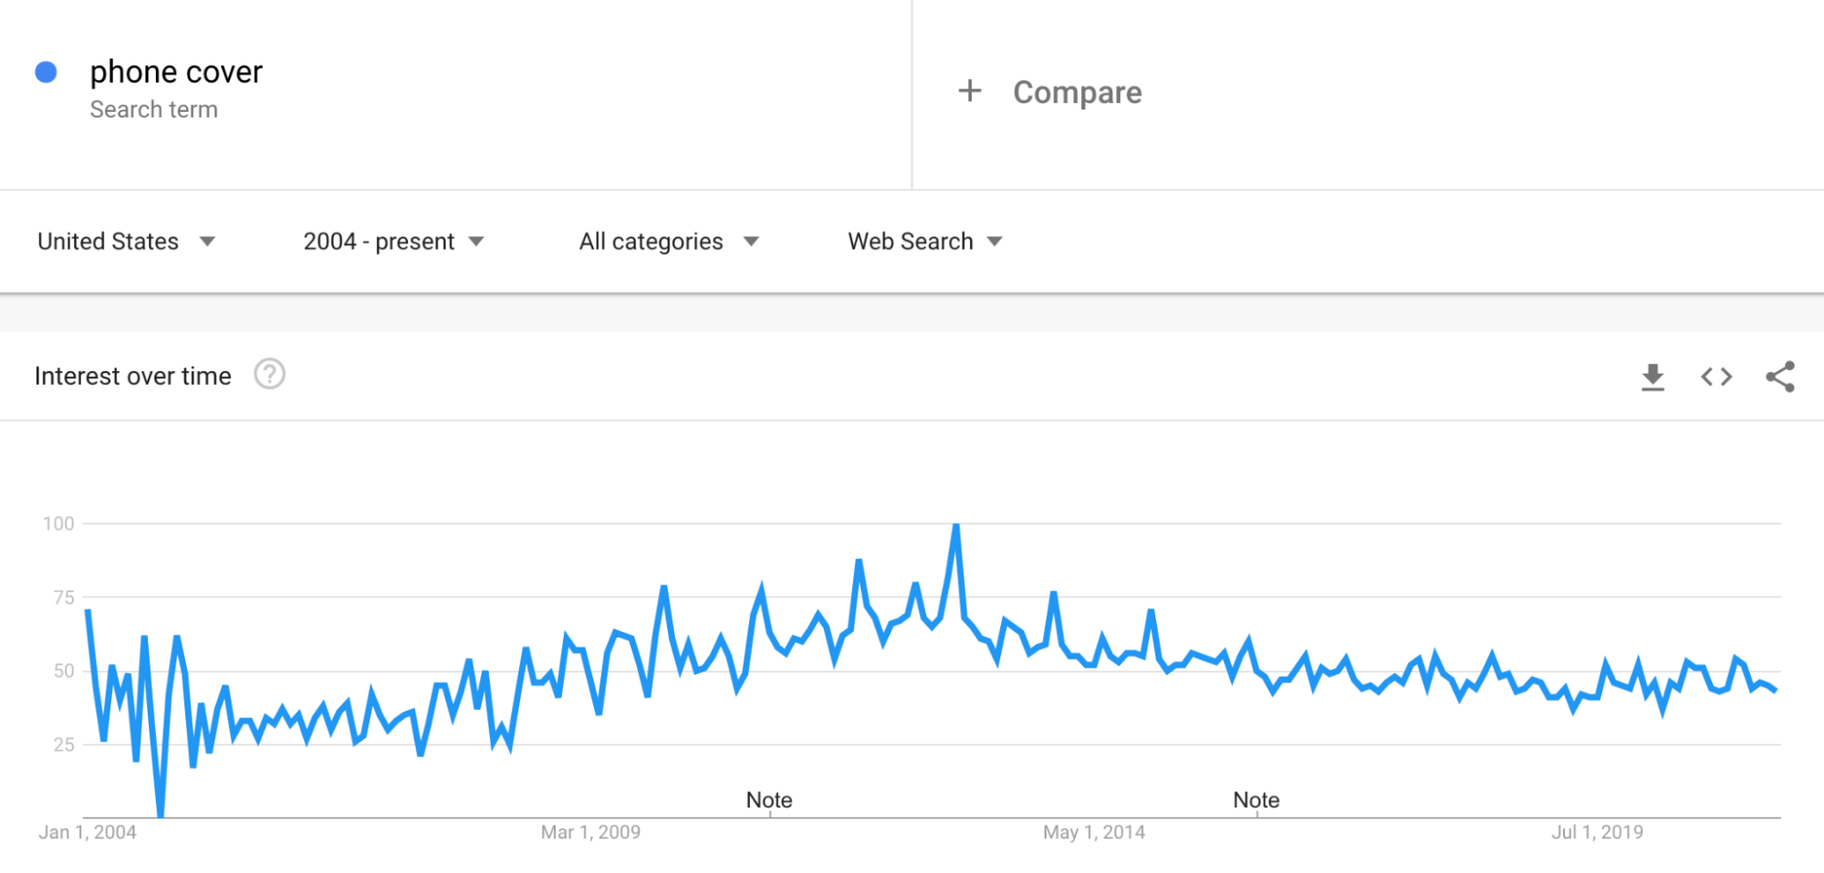 Google Trends: Phone Covers